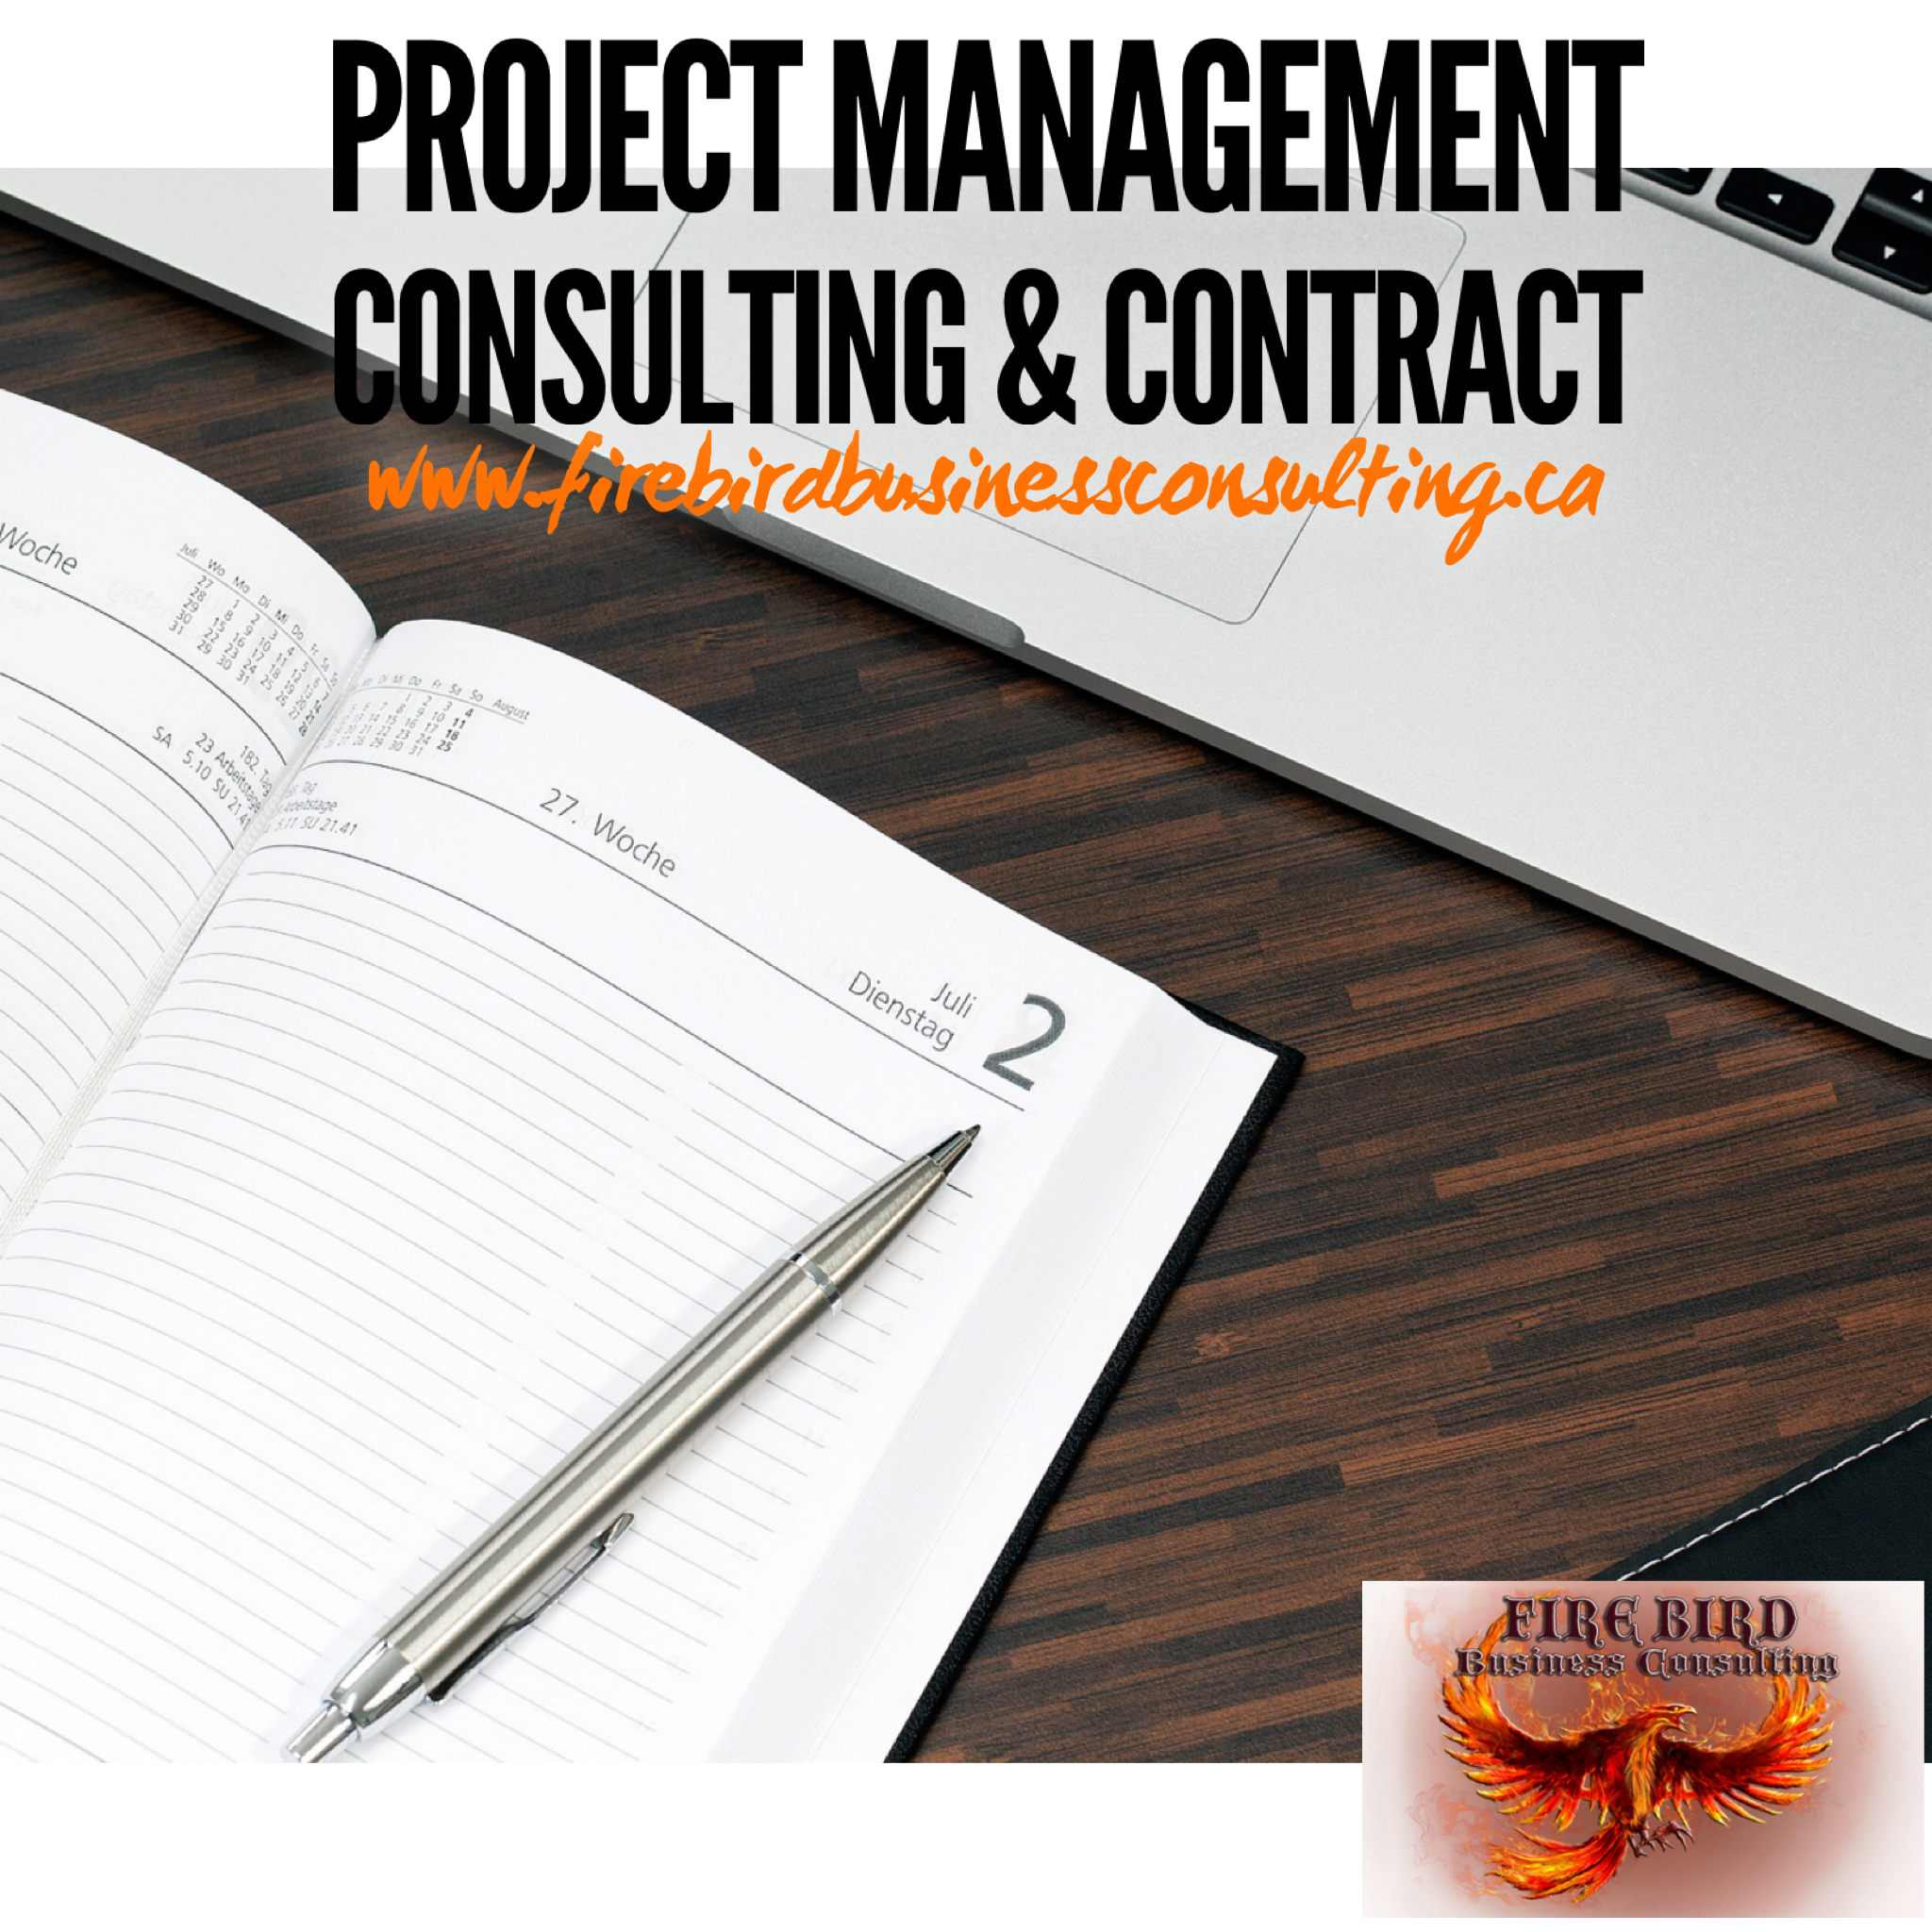 Contract Project Management – Project Management Consulting – Firebird Business Consulting Ltd. – Sk